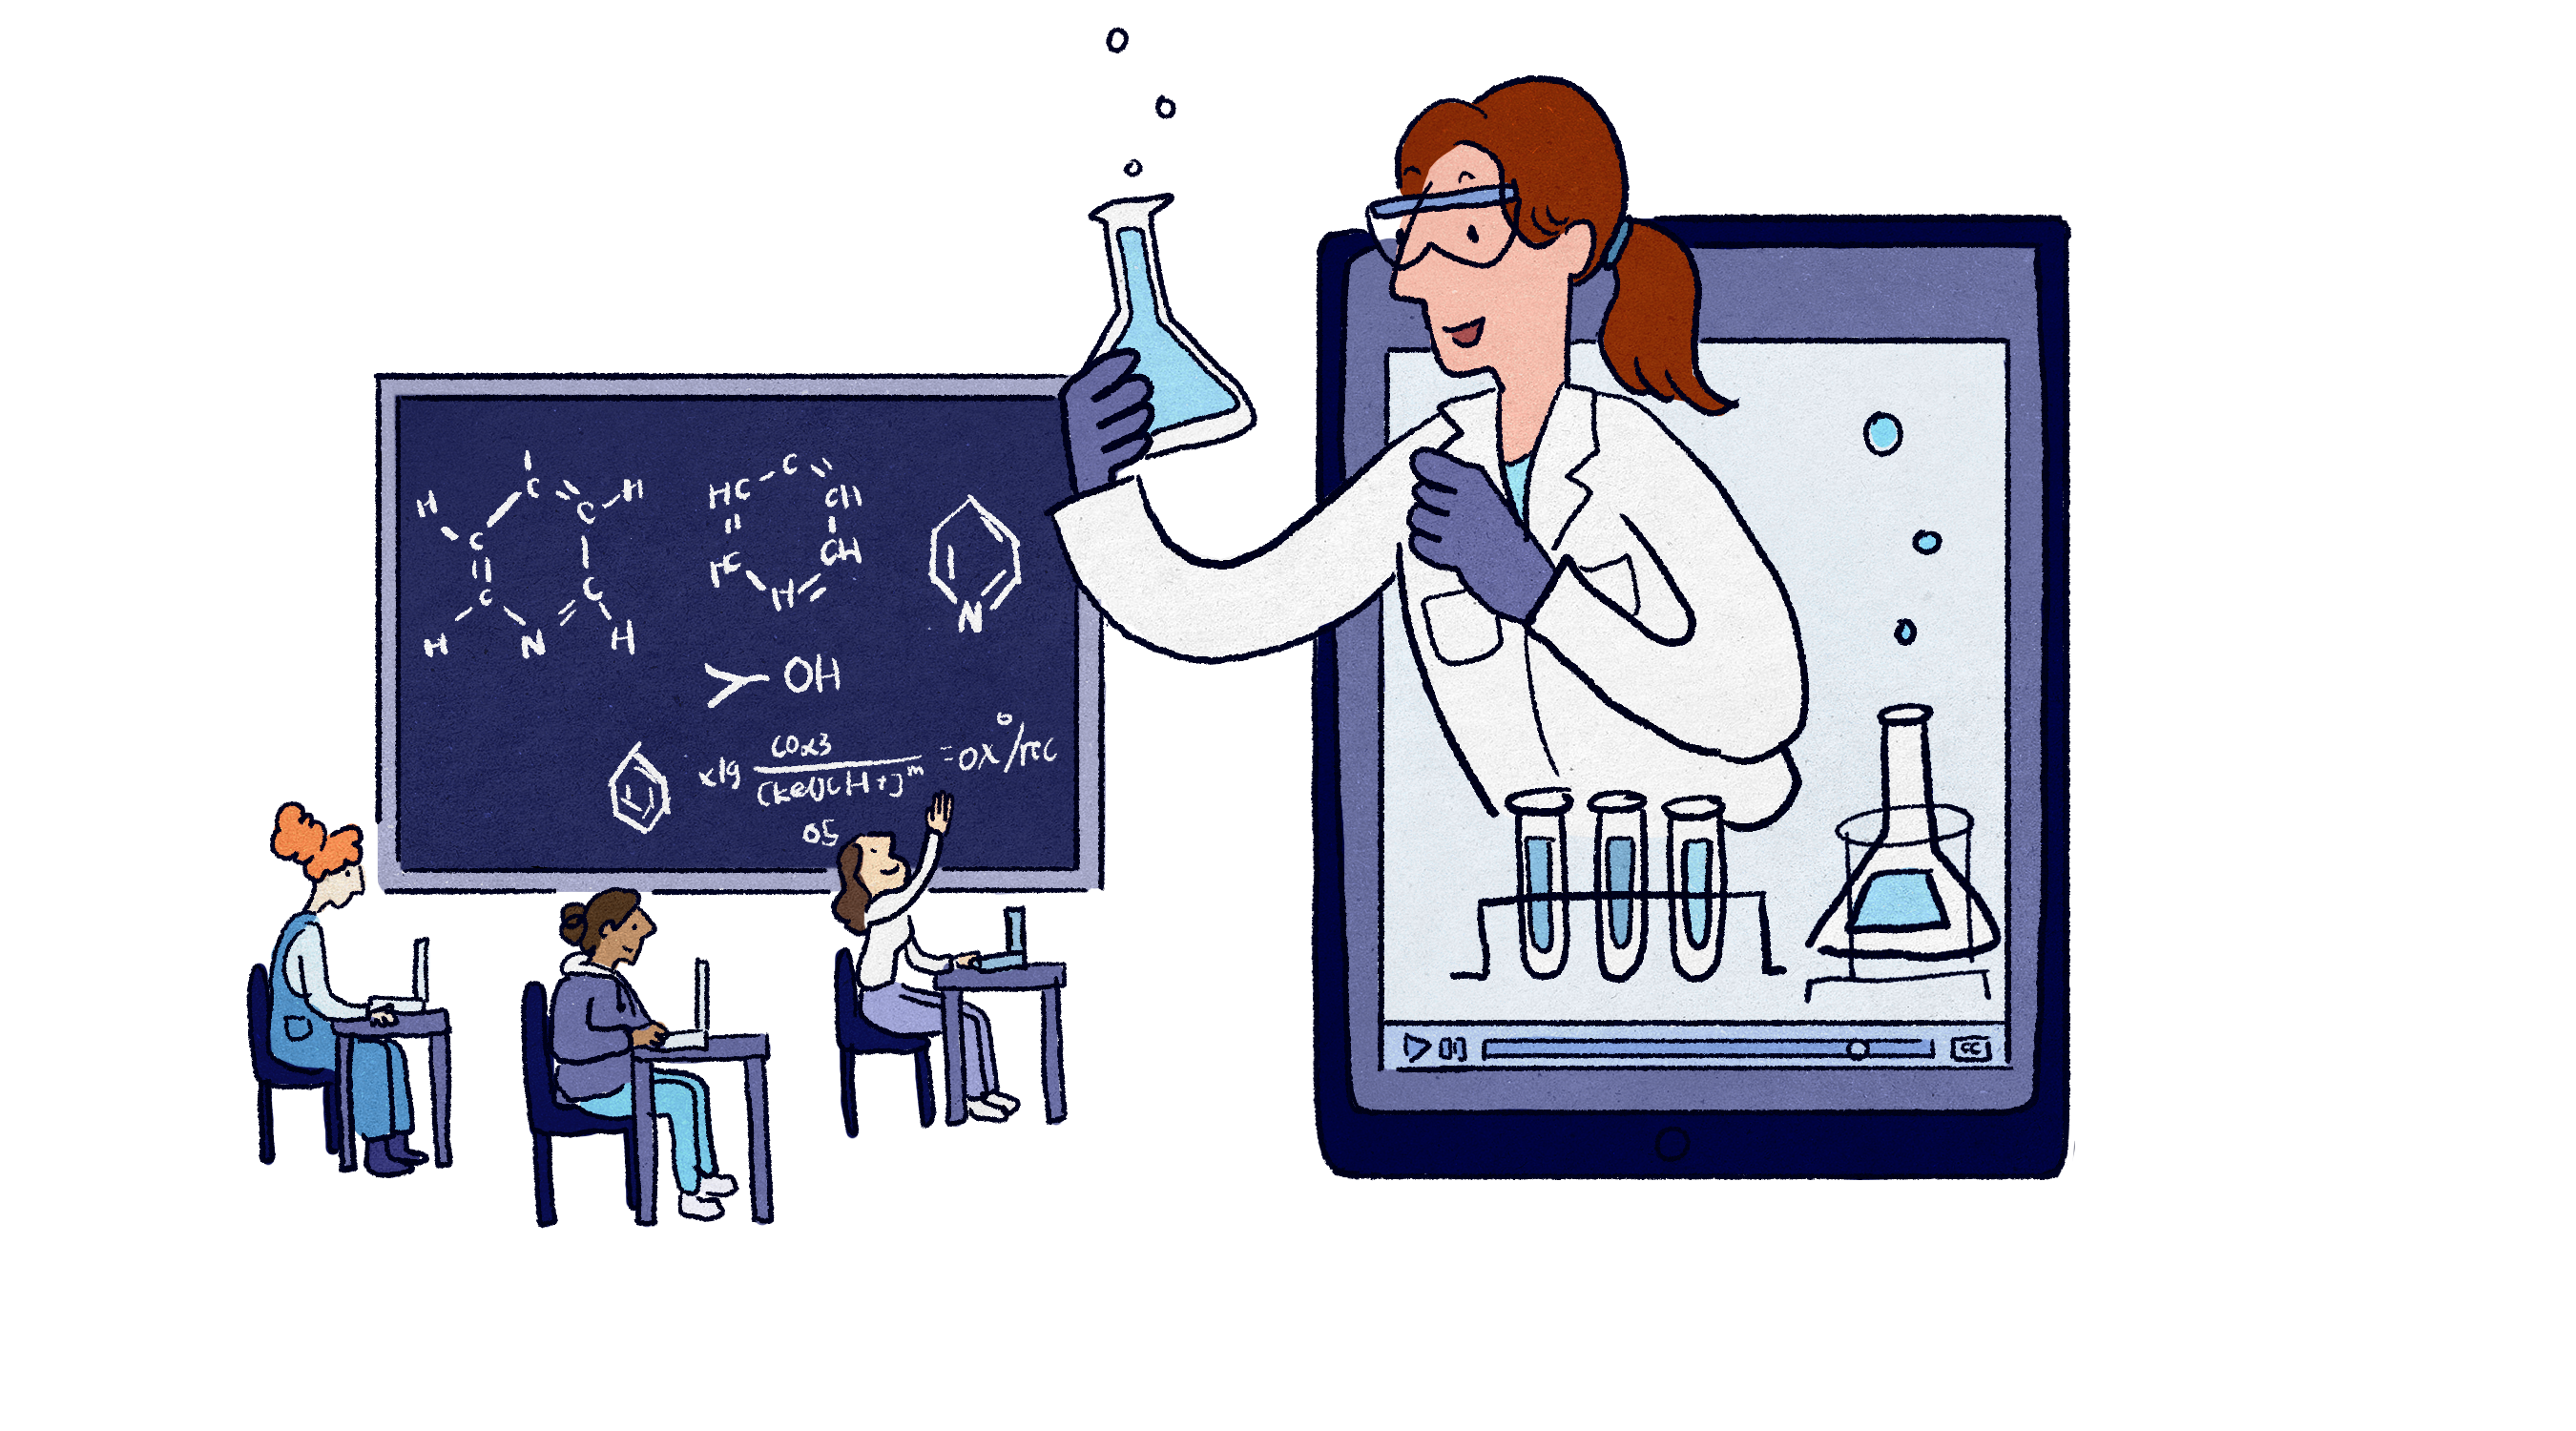 This is a graphic depicting a teacher holding a bubbling flask leaning out of an iPad to address students at desks as in a traditional classroom.